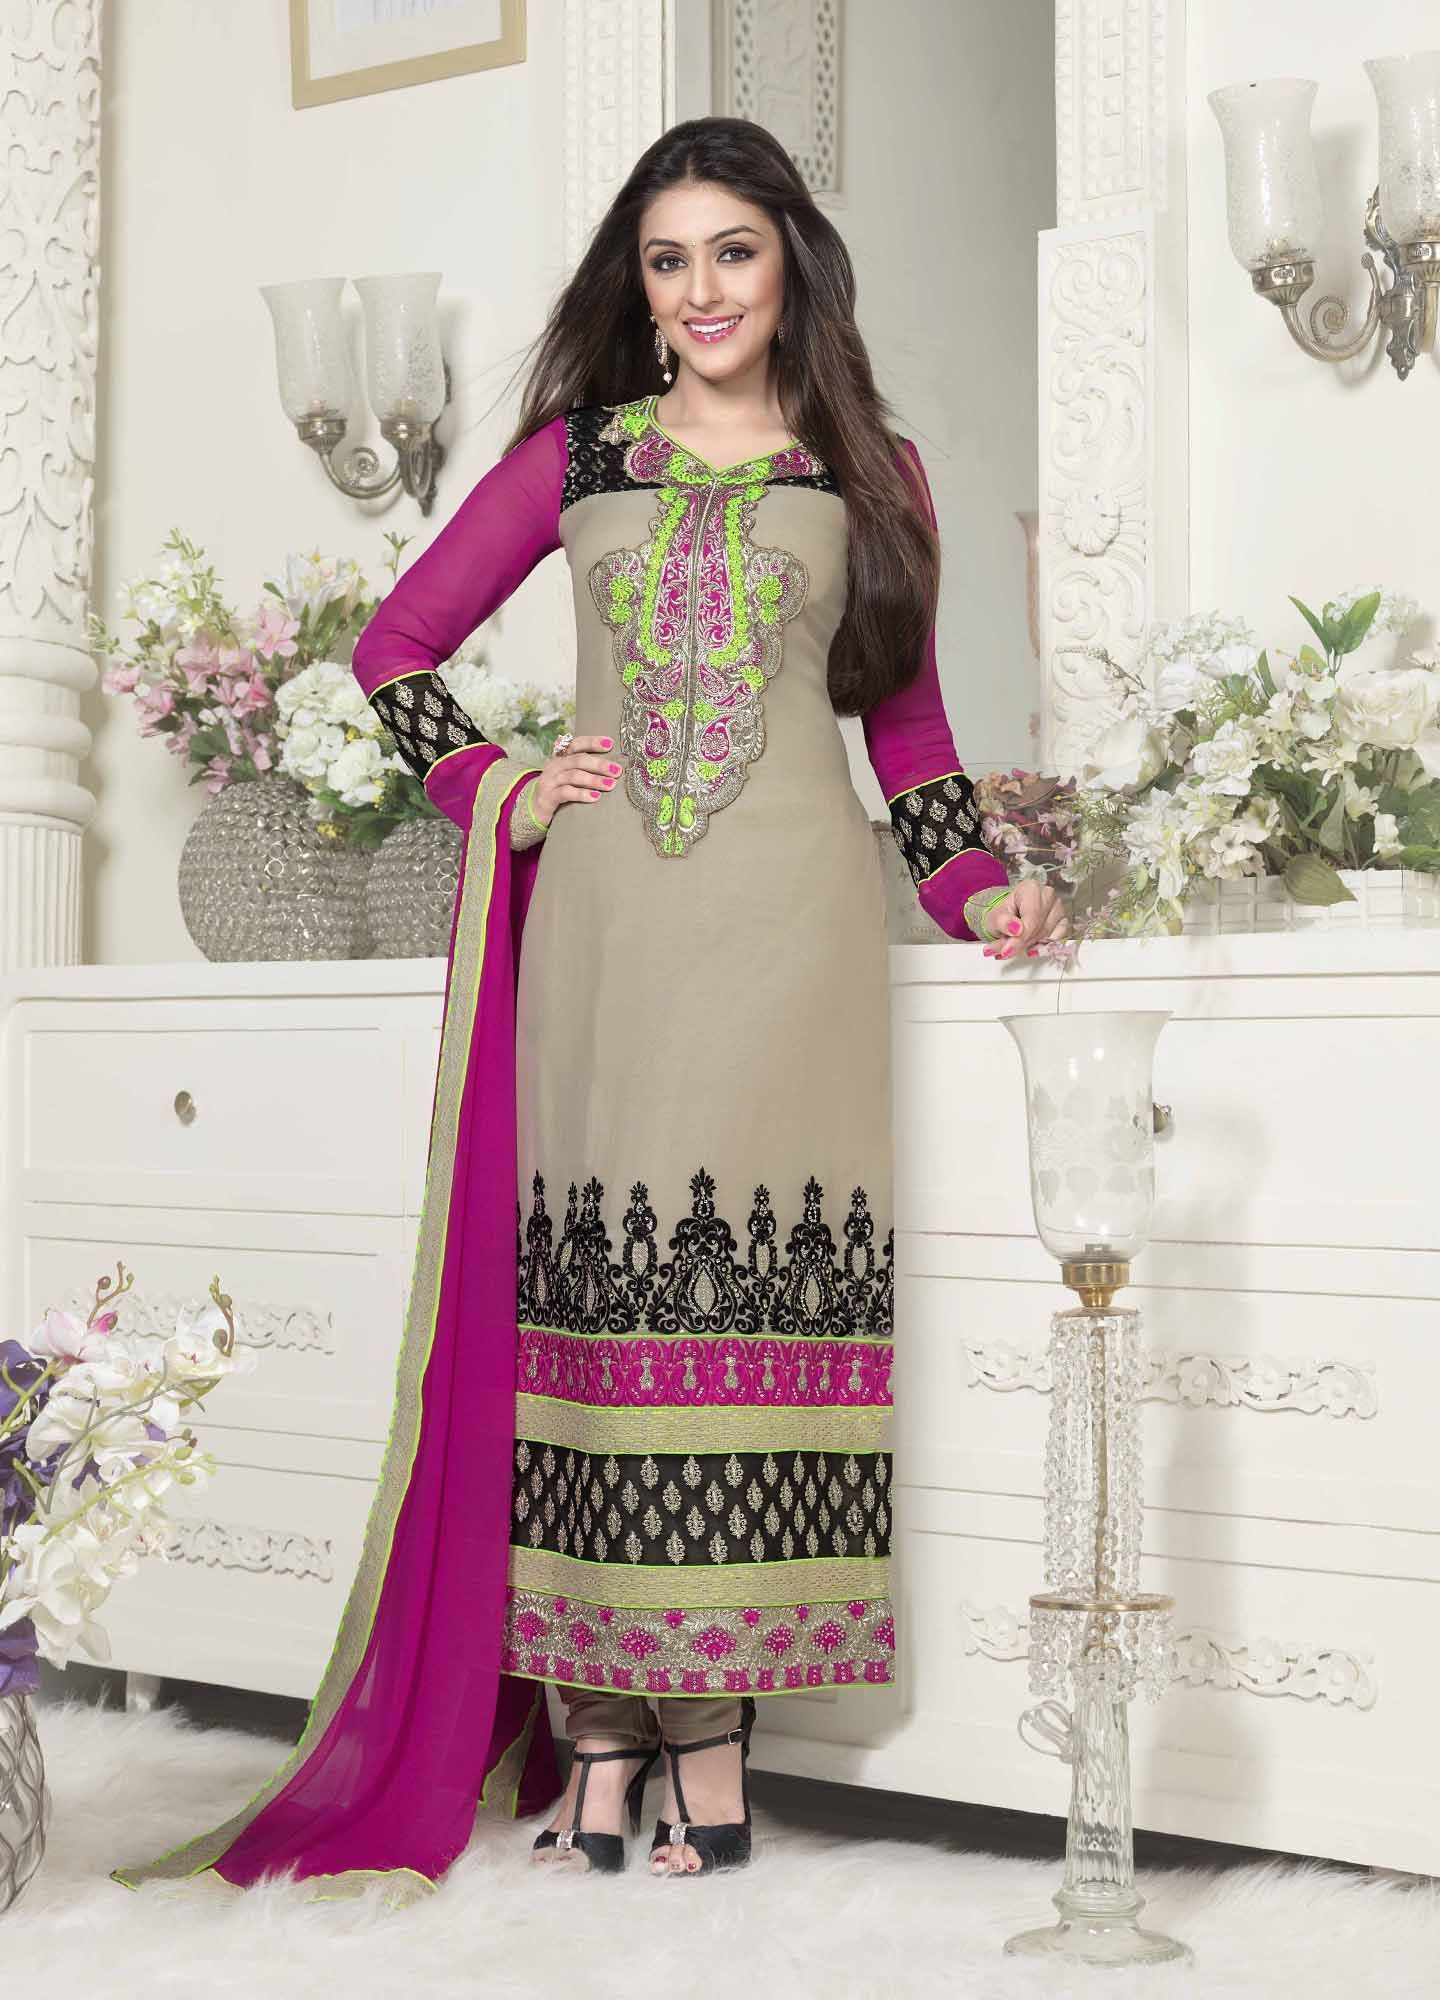 Gray u pink chudidar semi stitched salwar kameez gray pink and